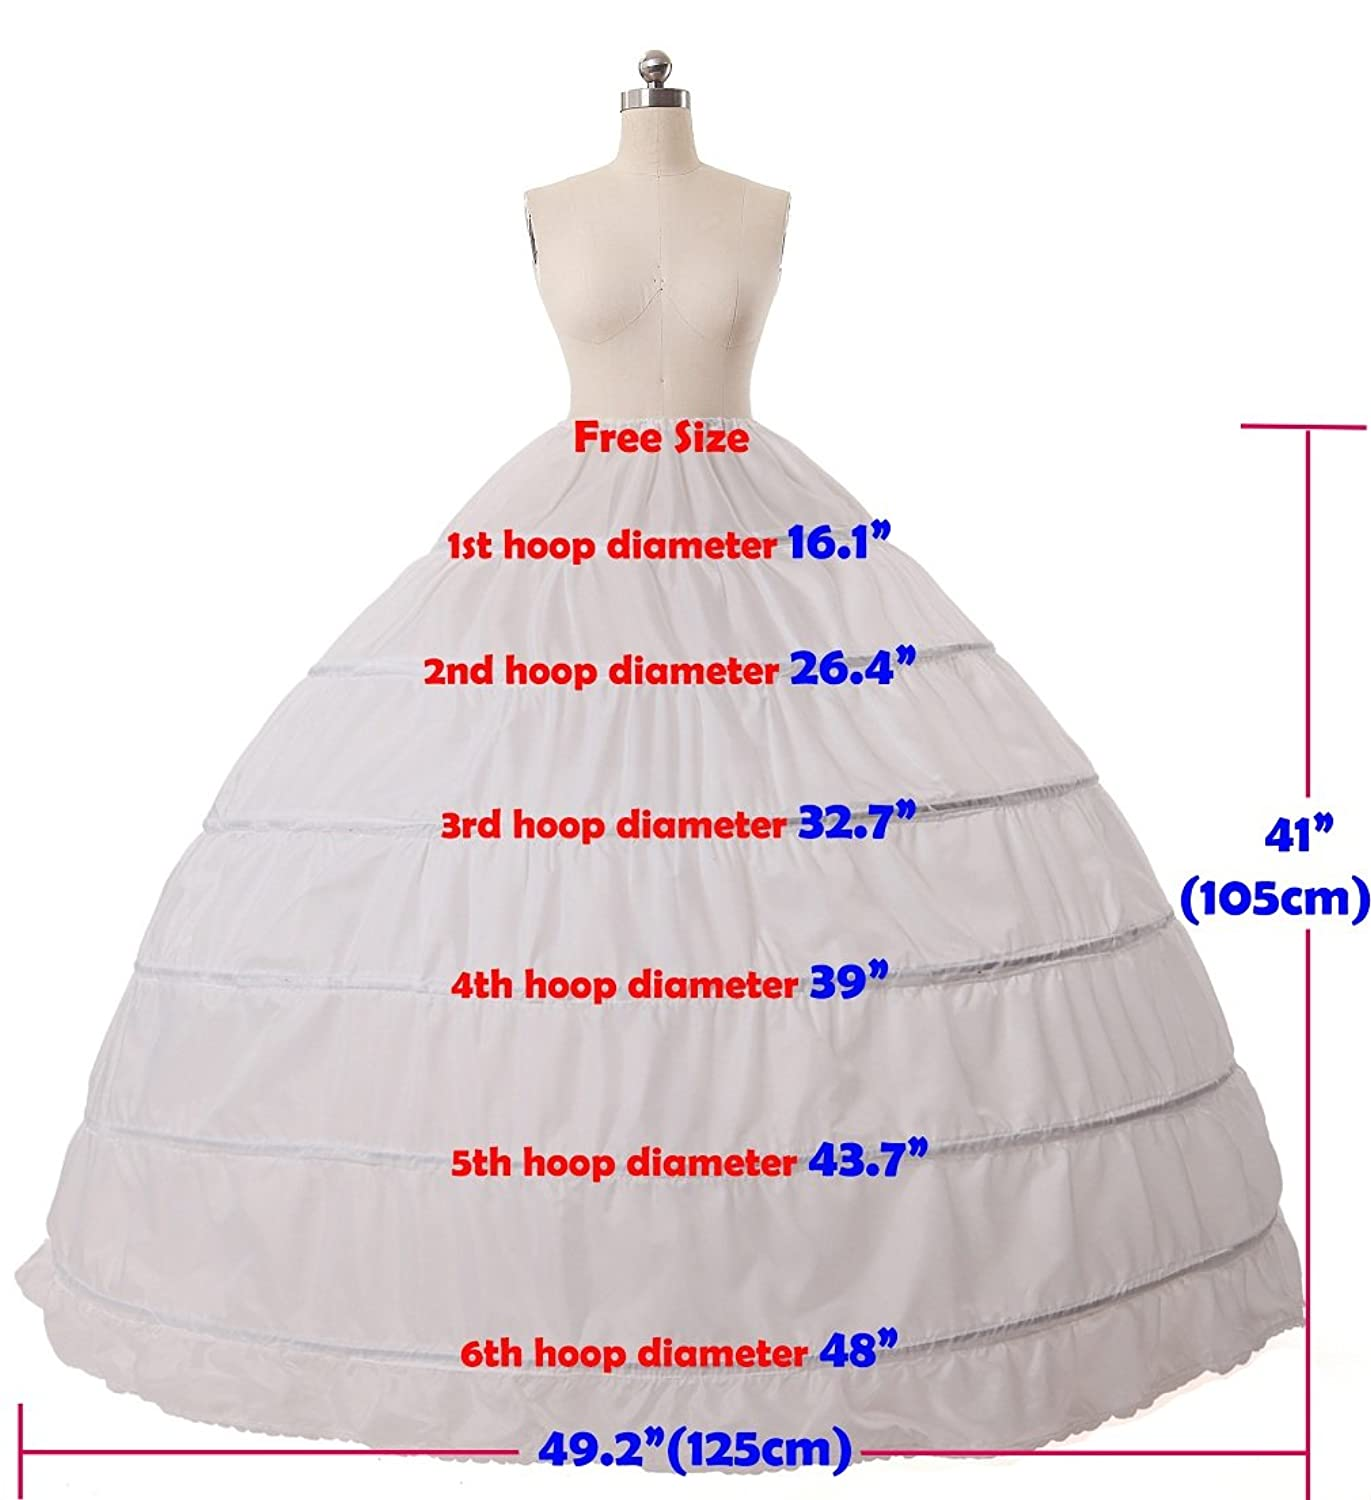 Tea Length Hoop Skirt